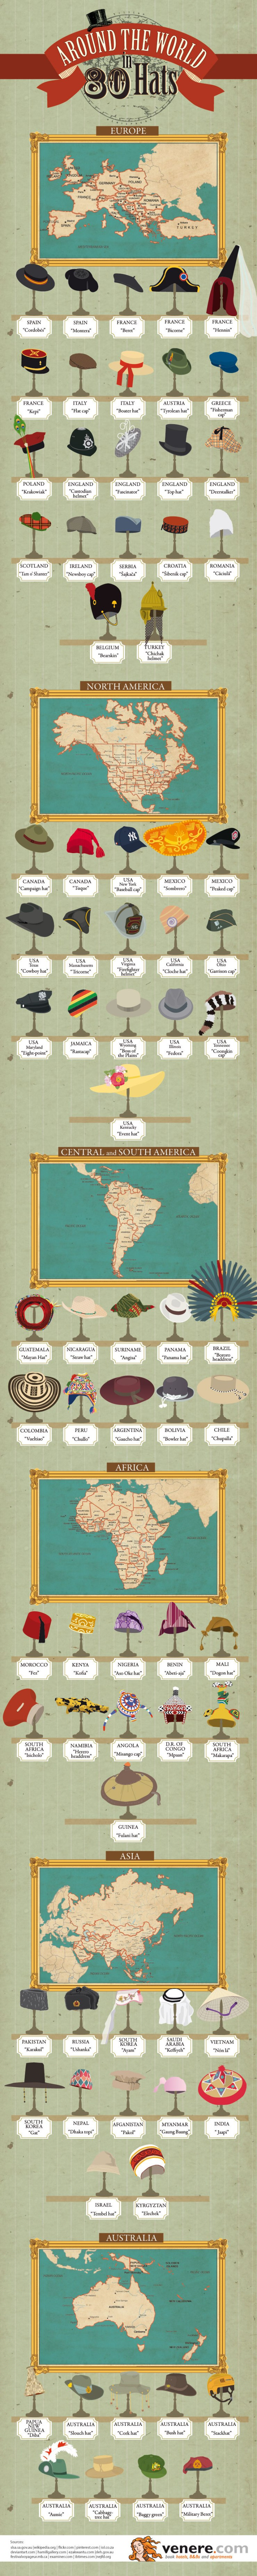 80 hats around the world